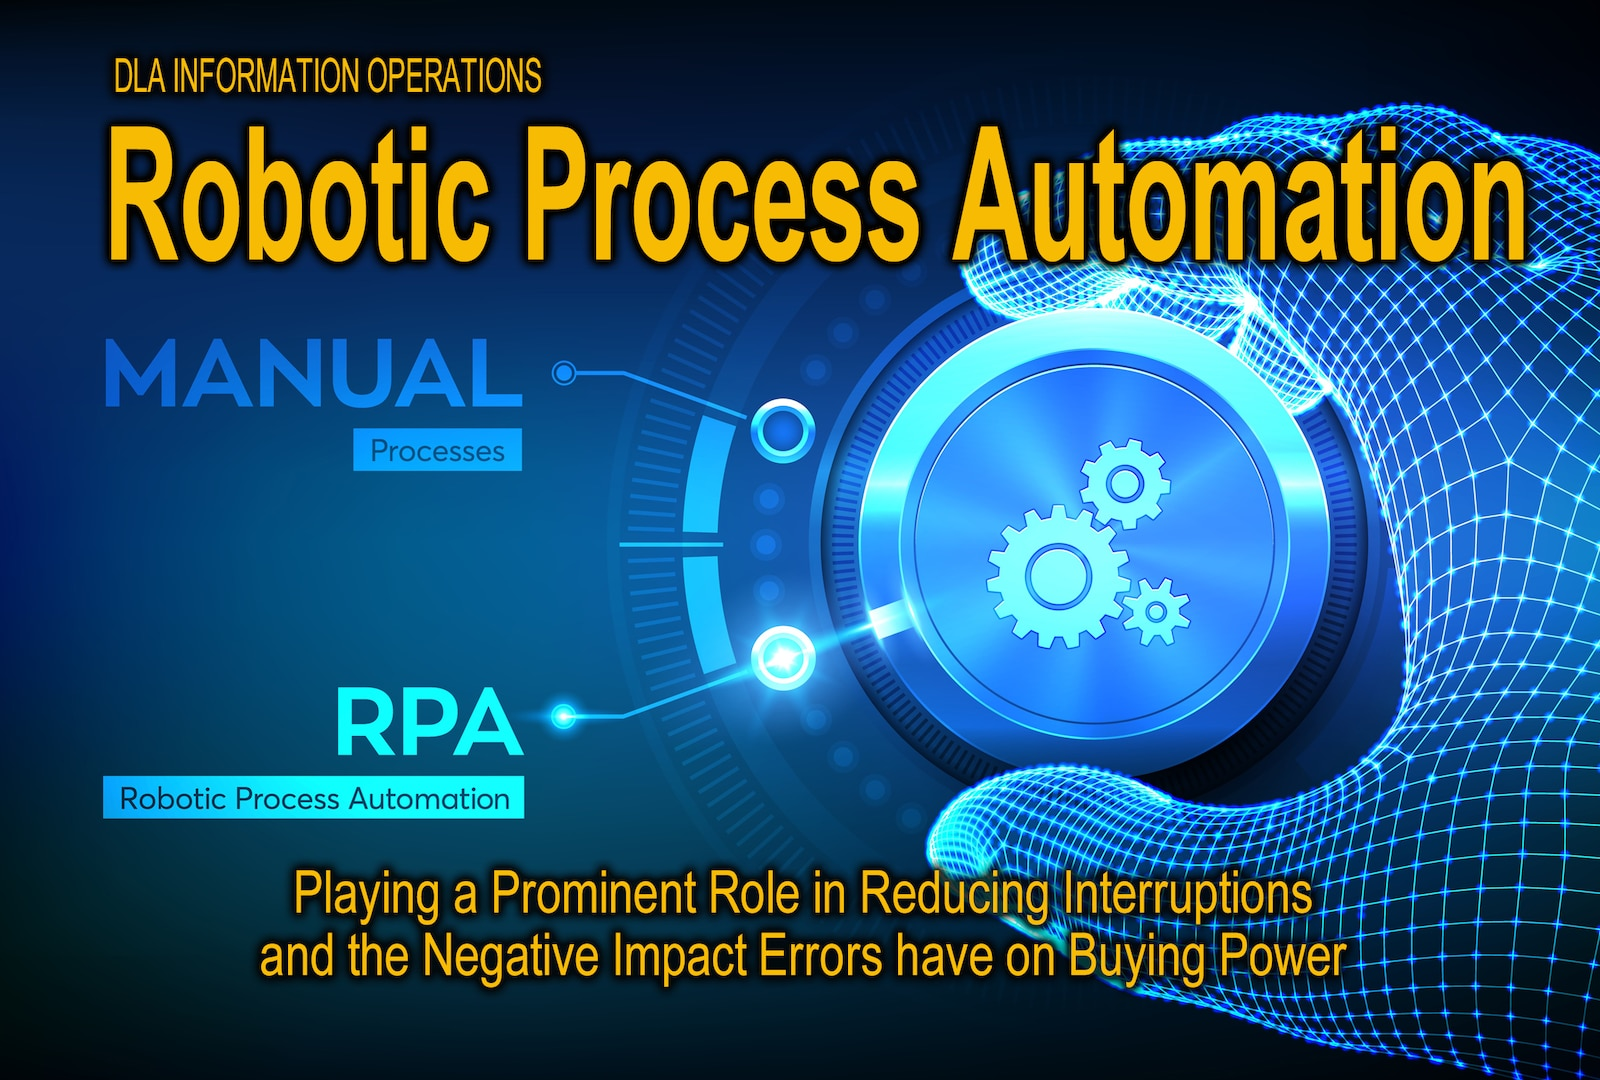 Graphic shows a hand and dial in white and blue tones with the text Robotic Process Automation: Playing a prominent role in reducing interruptions and the negative impact errors have on buying power.